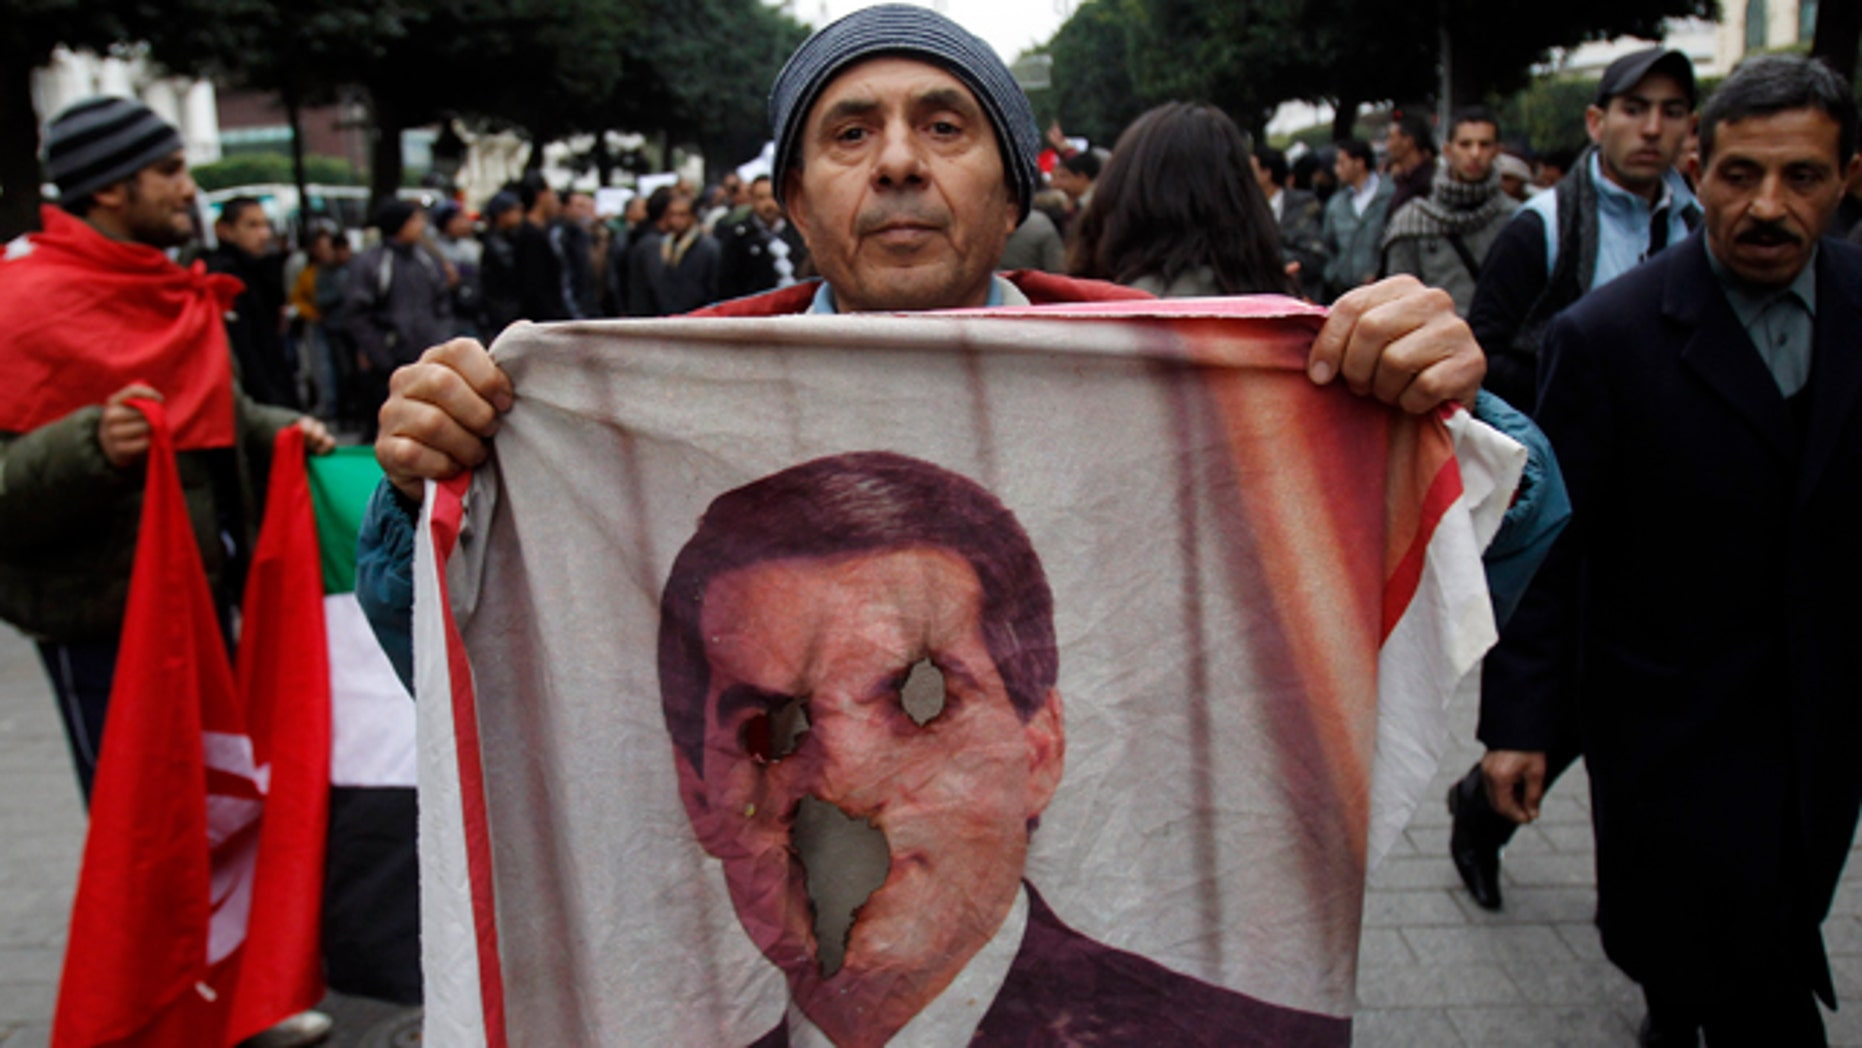 Jan. 25: A protestor holds a burned picture of former Tunisian President Zine El Abidine Ben Ali during a demonstration in Tunis.